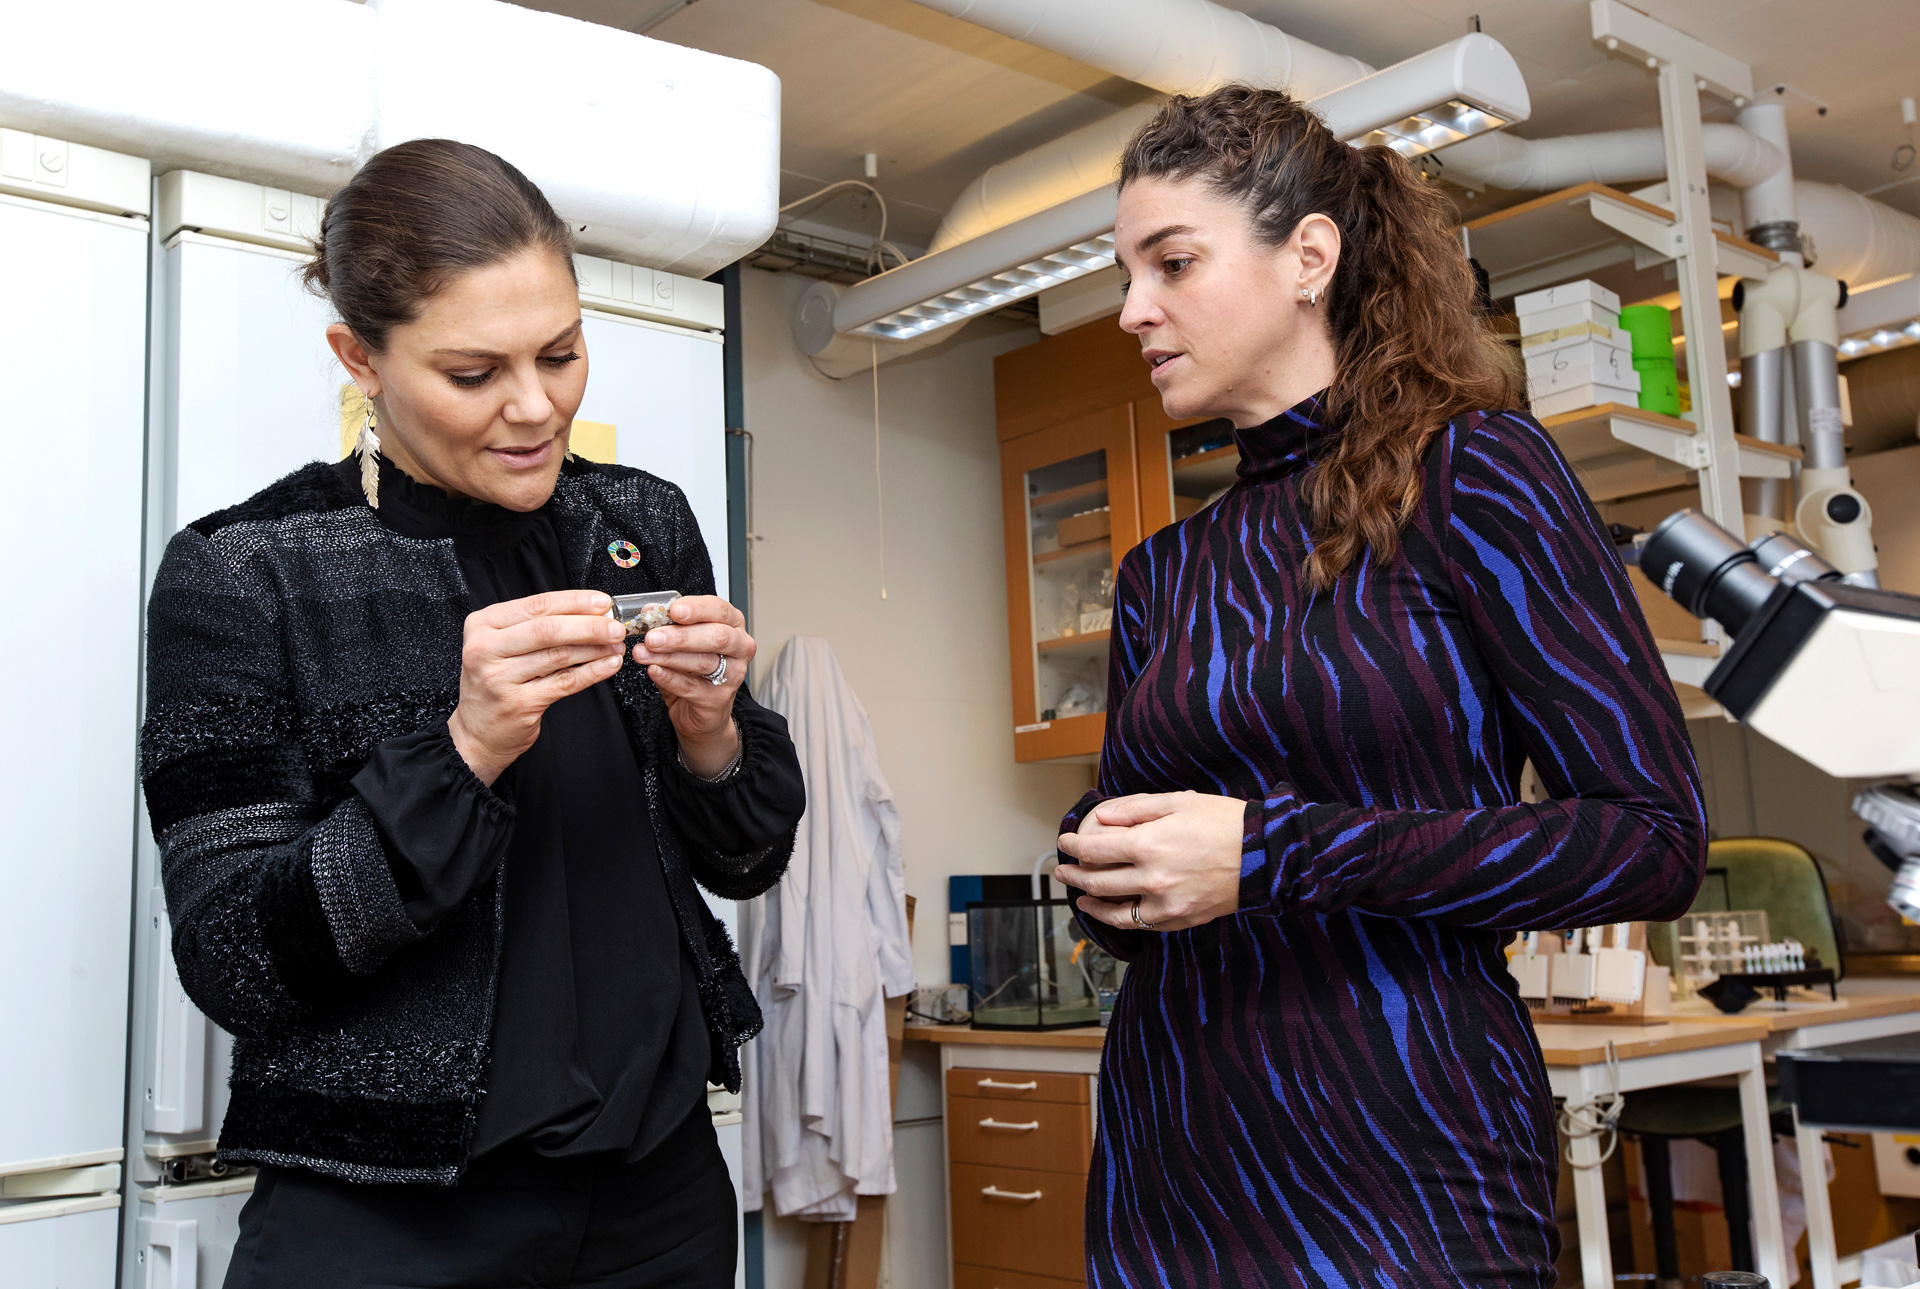 Crown Princess Victoria in conversation with Bethanie Carney Almroth, Associate Professor of Ecotoxicology, during her visit to the Zoology building.